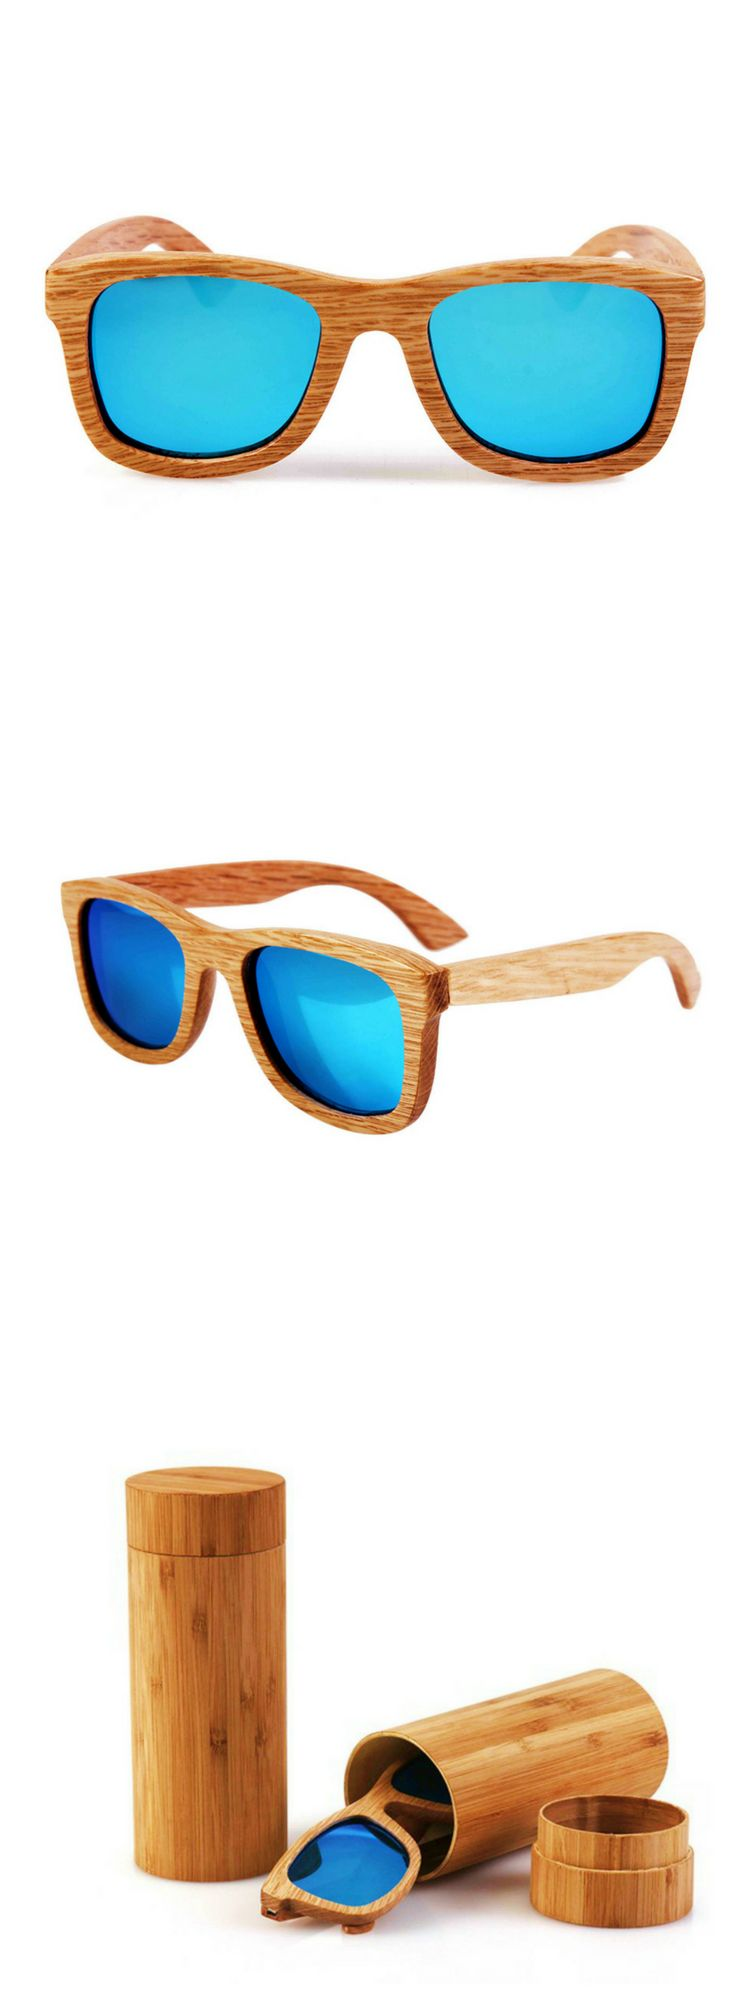 Made from bamboo, this sunglass for women is sure to protect your eyes from the harmful rays of the sun while keeping you looking stylish | sunglass for round face, sunglass for women round face, sunglasses for round face, sunglasses for your face shape round, sunglasses for women round face, sunglasses for women with round faces, round face sunglasses woman, round face sunglasses shape, round face sunglasses woman shape | #sunglass #sunglasses #eyeglasses #eyeglass #eyewear #shades #sunnies